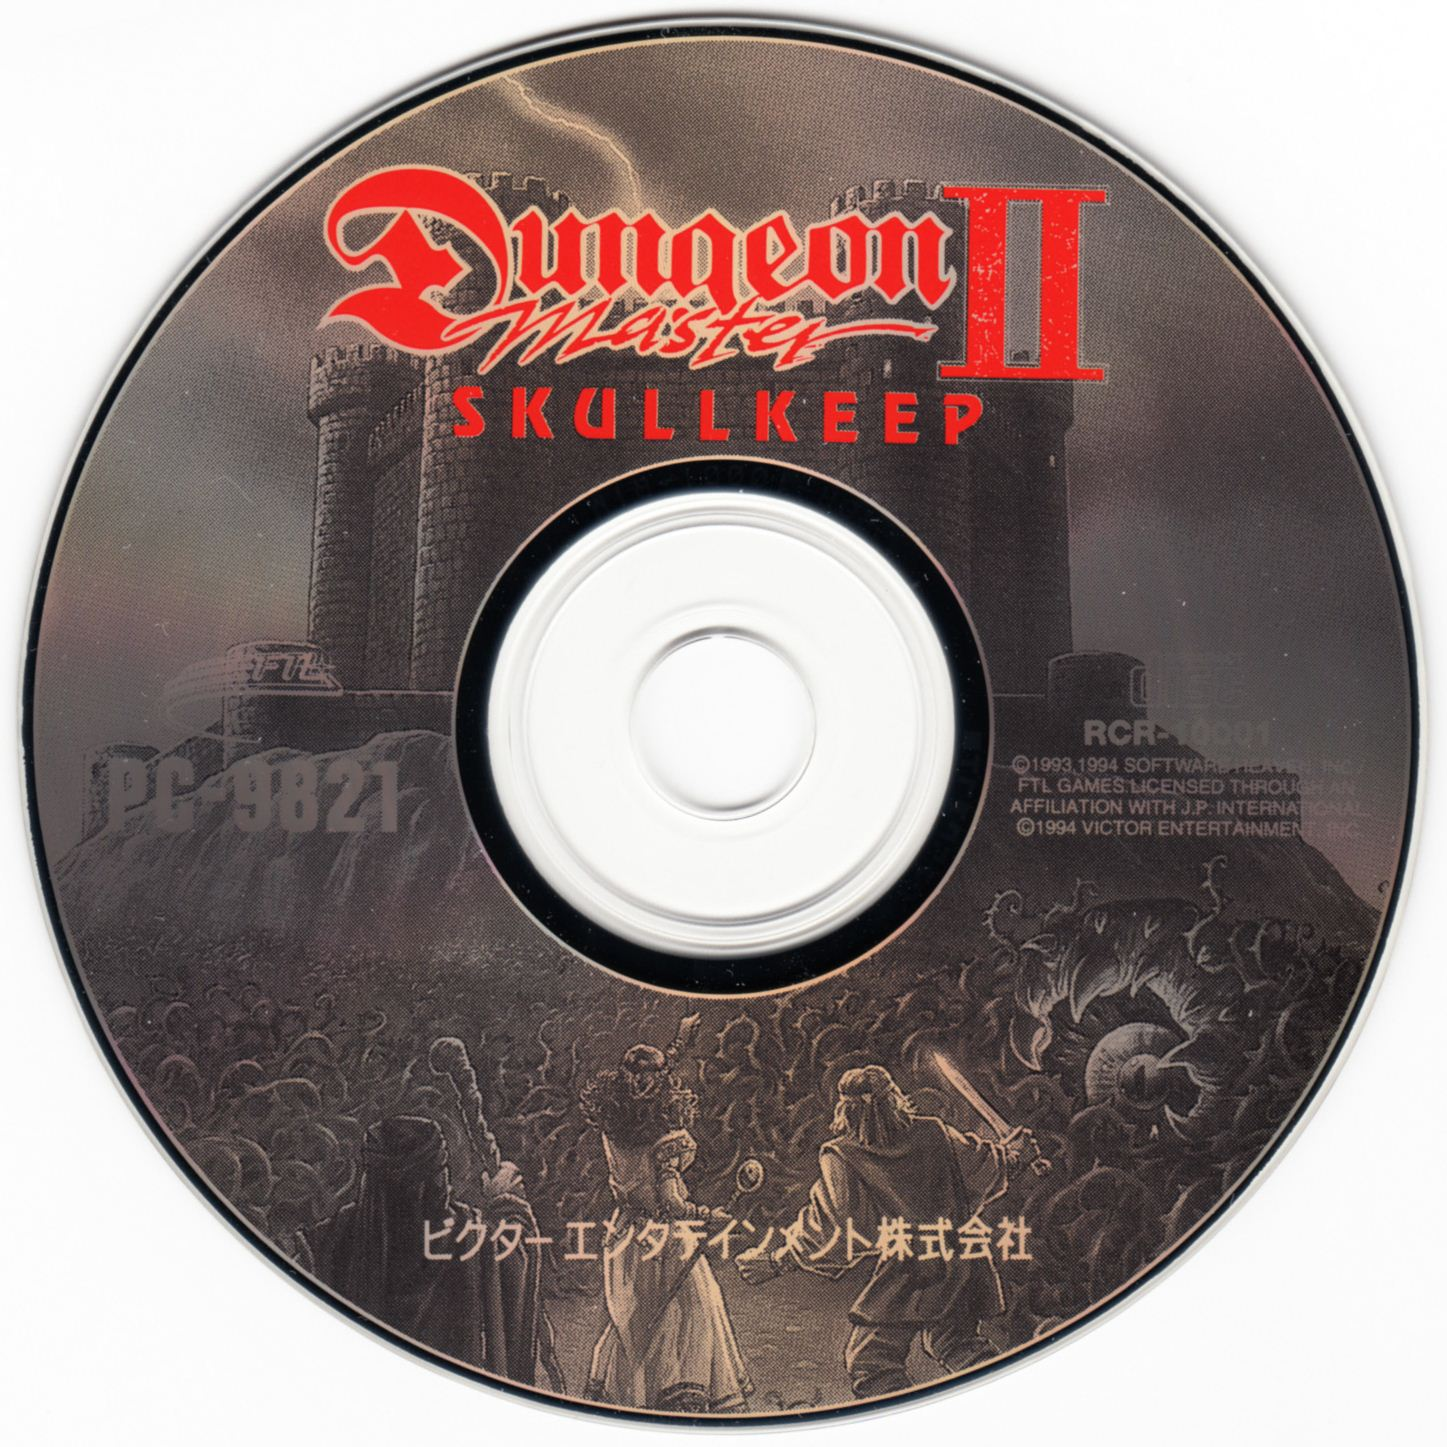 Game - Dungeon Master II - JP - PC-9821 - Compact Disc - Front - Scan